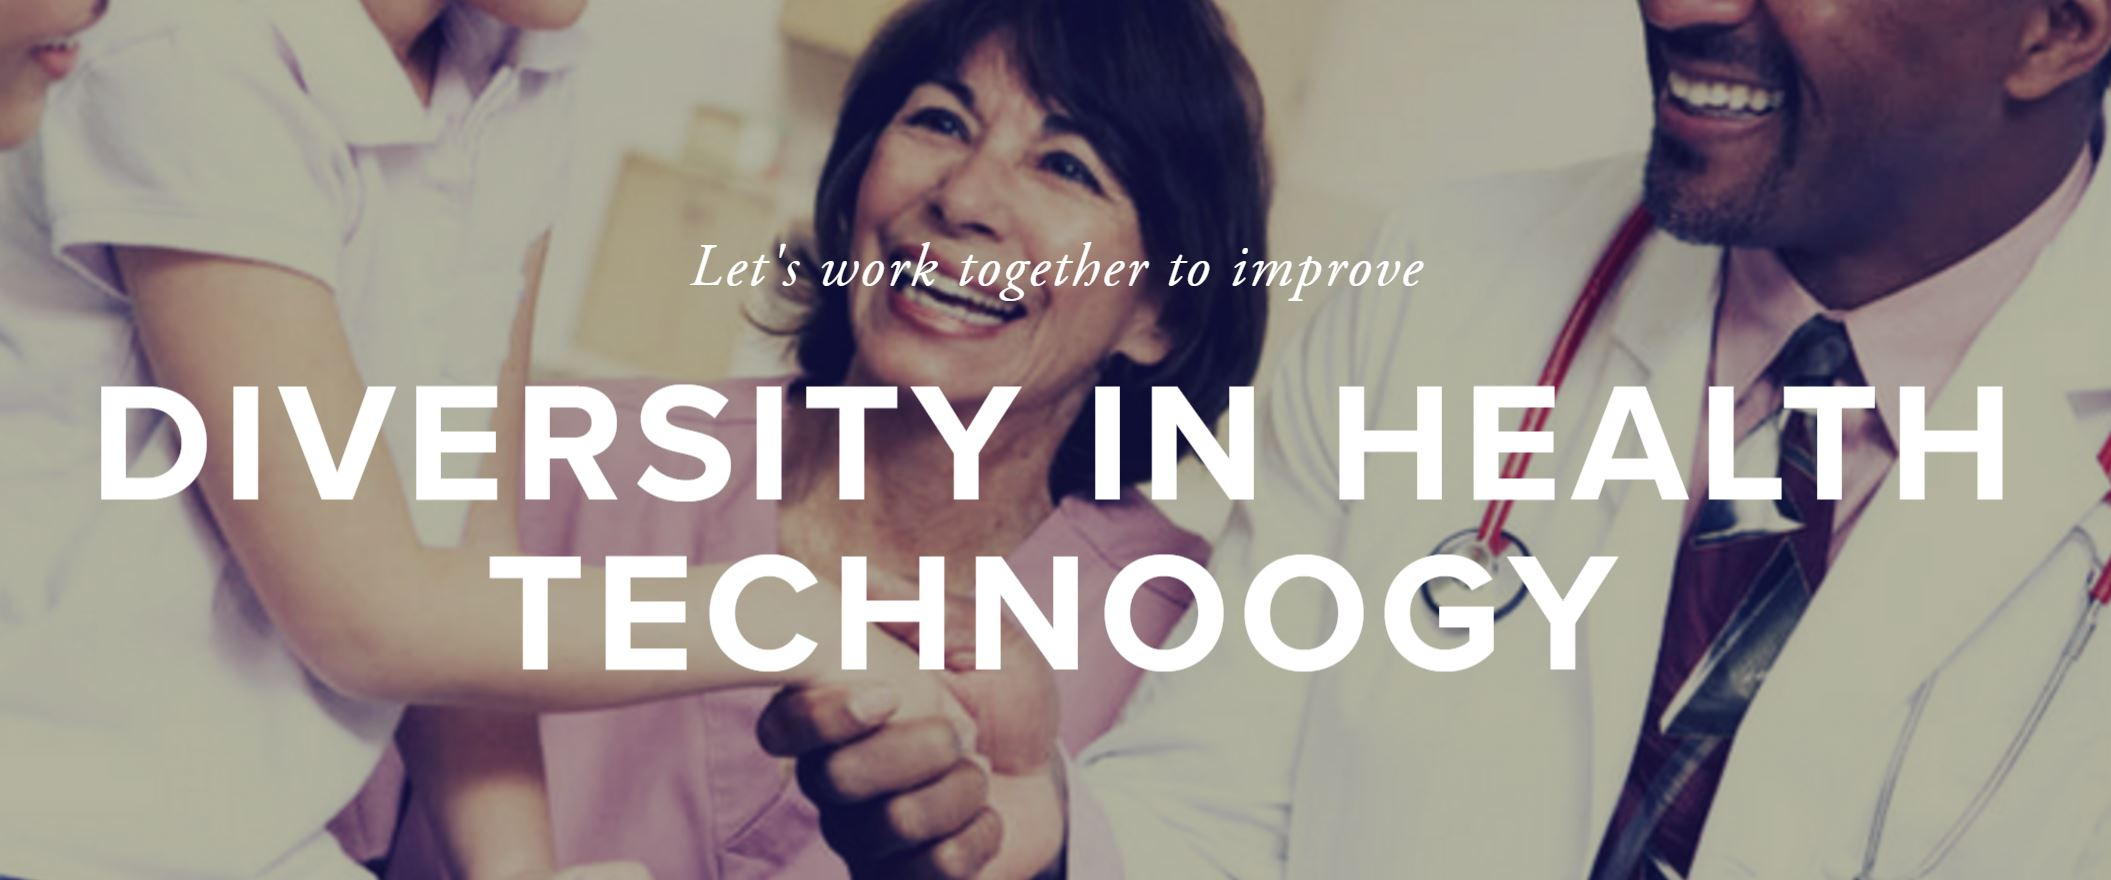 Diversity in Health Technology